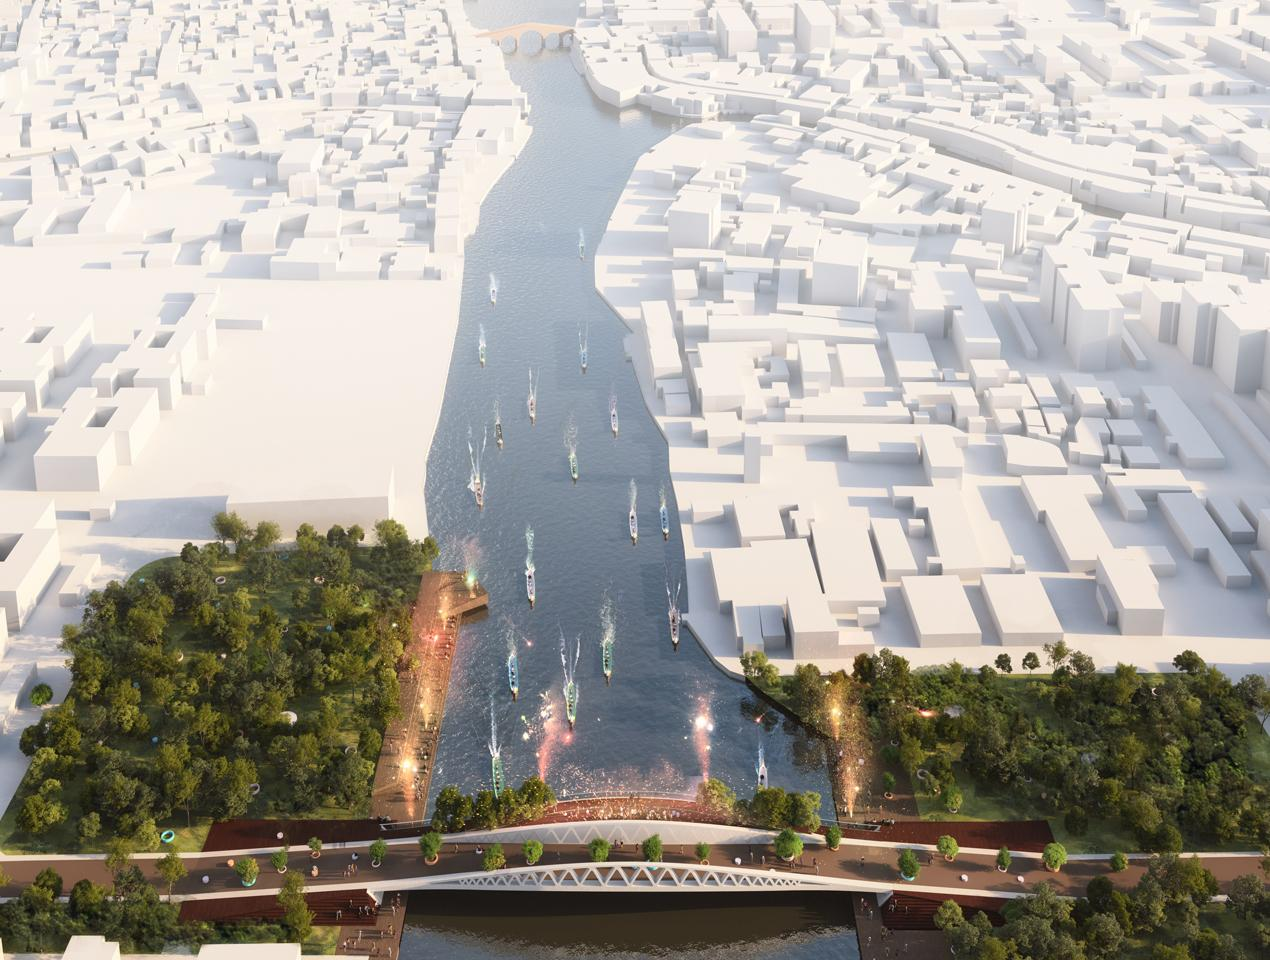 The bridge has been planned to integrate with the river and to the network of canals that form and identify Zhujiajiao